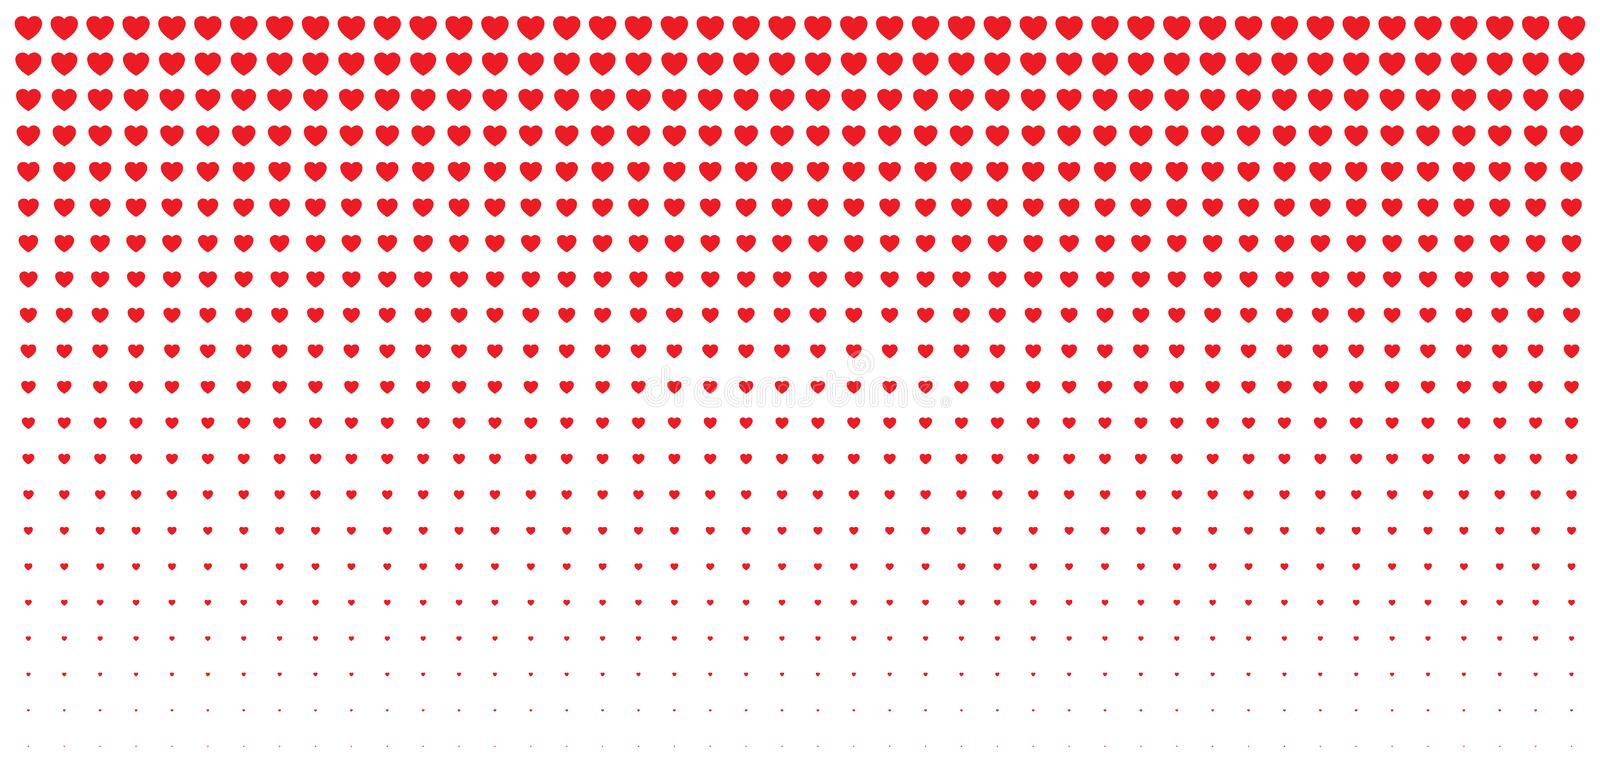 Halftone red hearts gradient background valentines day design card valentines day design illustration card wedding invitation card backdrop design element of background for medical health treatment vector illustration stopboris Images